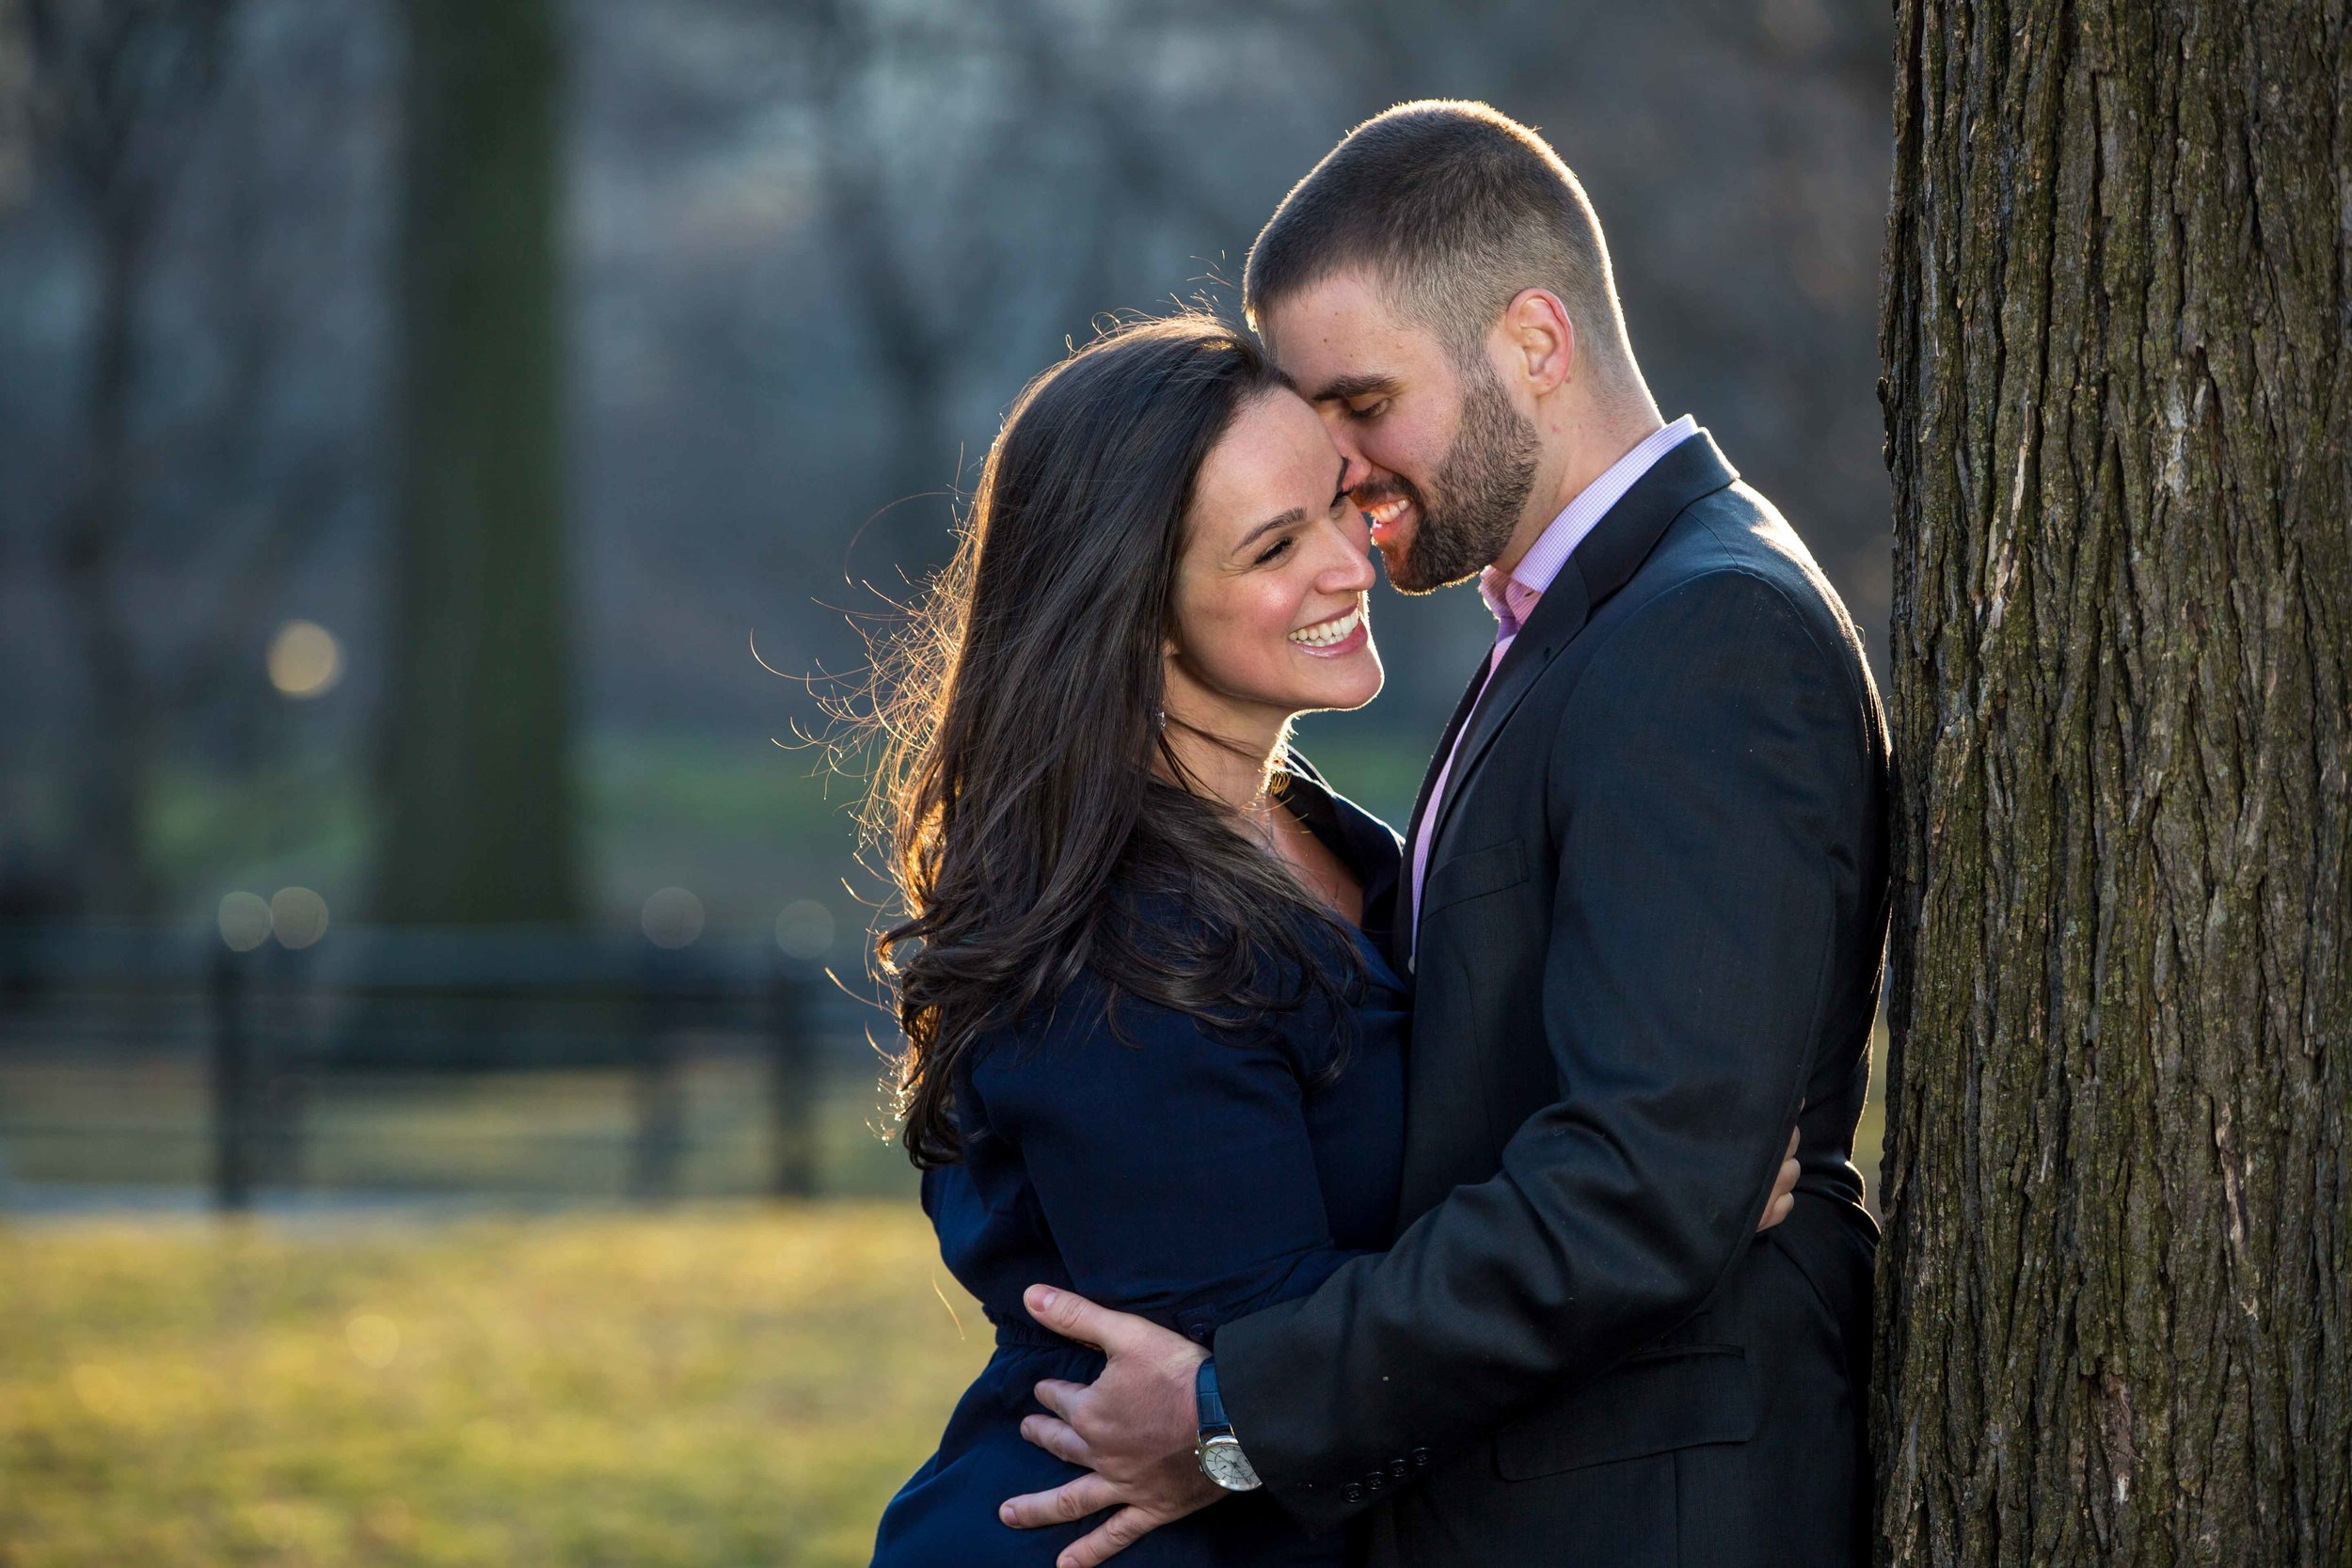 NYC Central Park Engagement Session Shoot Wedding Photographer-1.jpg